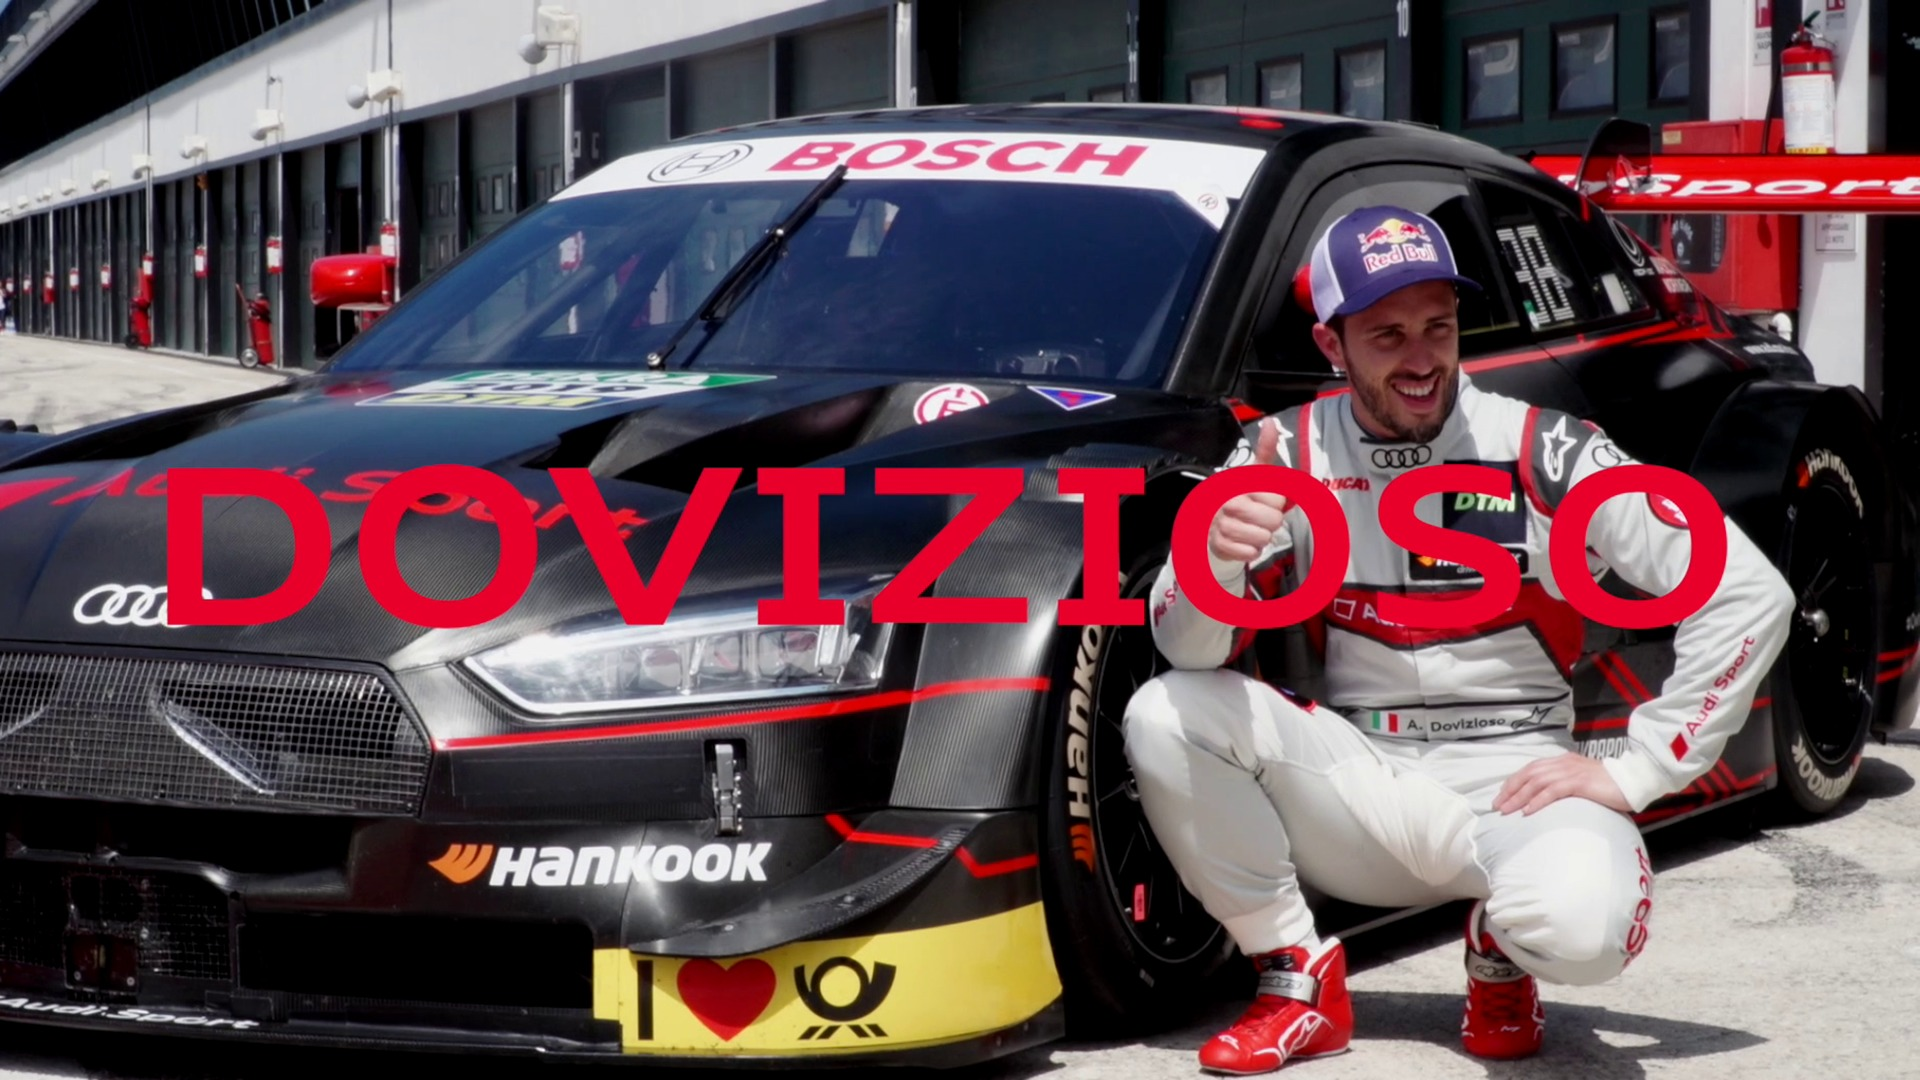 MotoGP star Dovizioso prepares for his guest start in the DTM